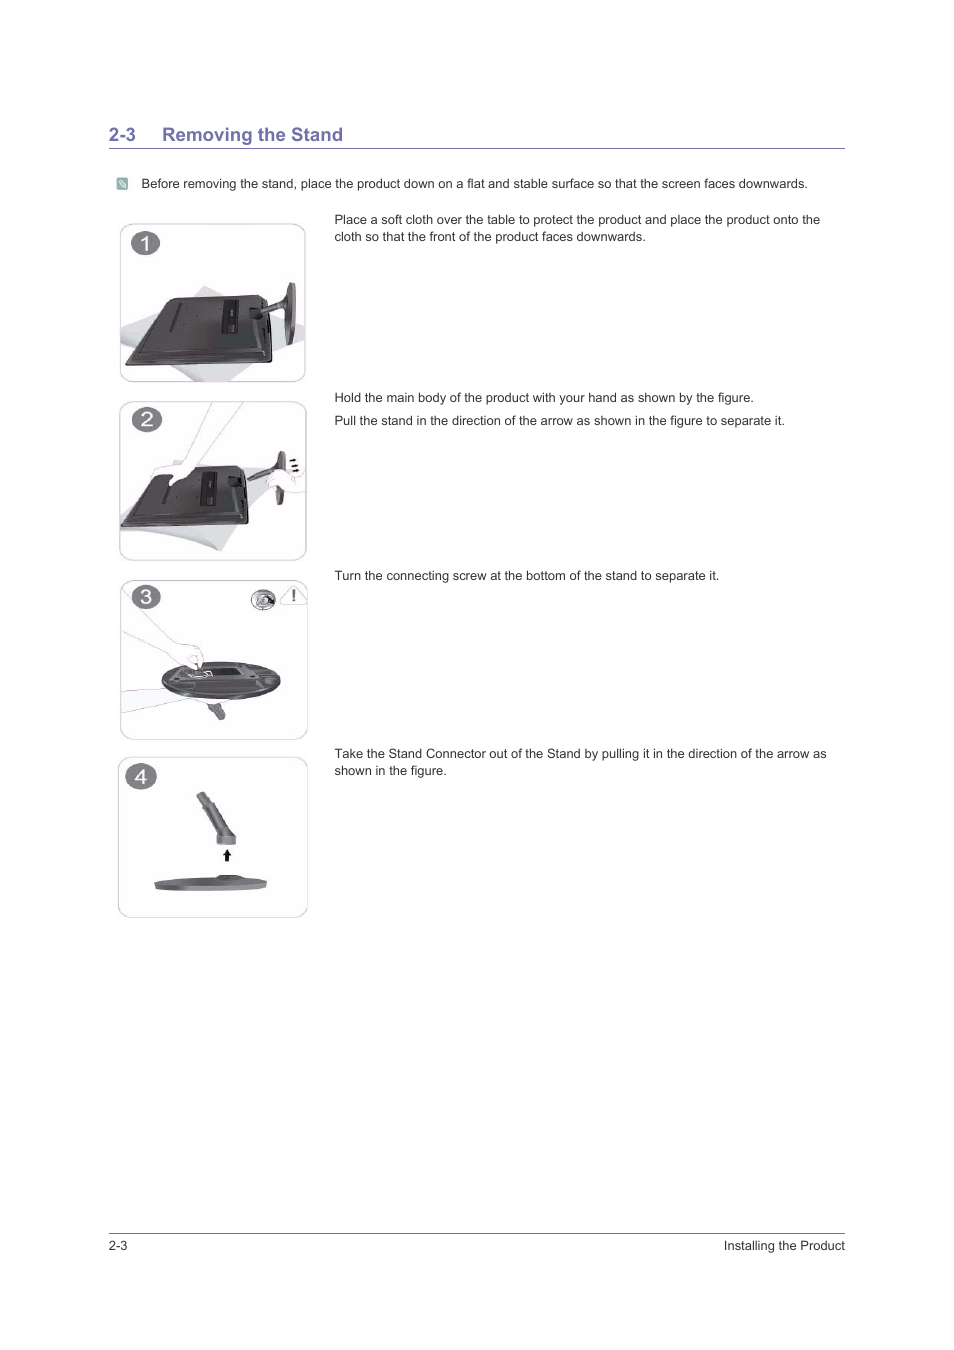 3 Removing The Stand Removing The Stand 3 Samsung Ls23puhkfv Za User Manual Page 14 50 Hot promotions in stand arrow on aliexpress if you're still in two minds about stand arrow and are thinking about choosing a similar product, aliexpress is a great place to compare prices and sellers. manualsdir com